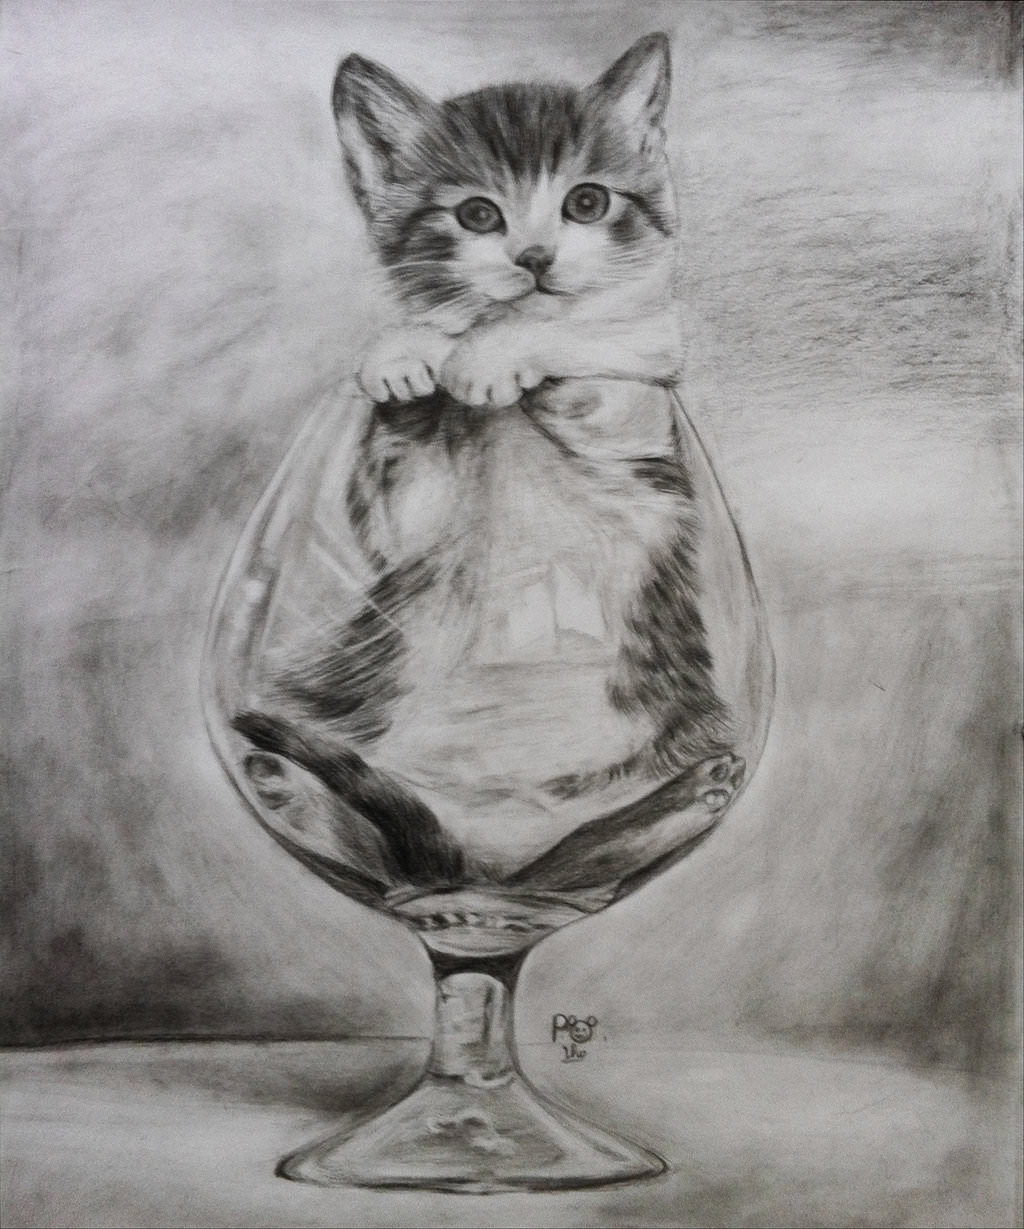 Cute Cats And Kittens Wallpaper Hd Cat Themes 19 Cat Drawings Art Ideas Sketches Design Trends